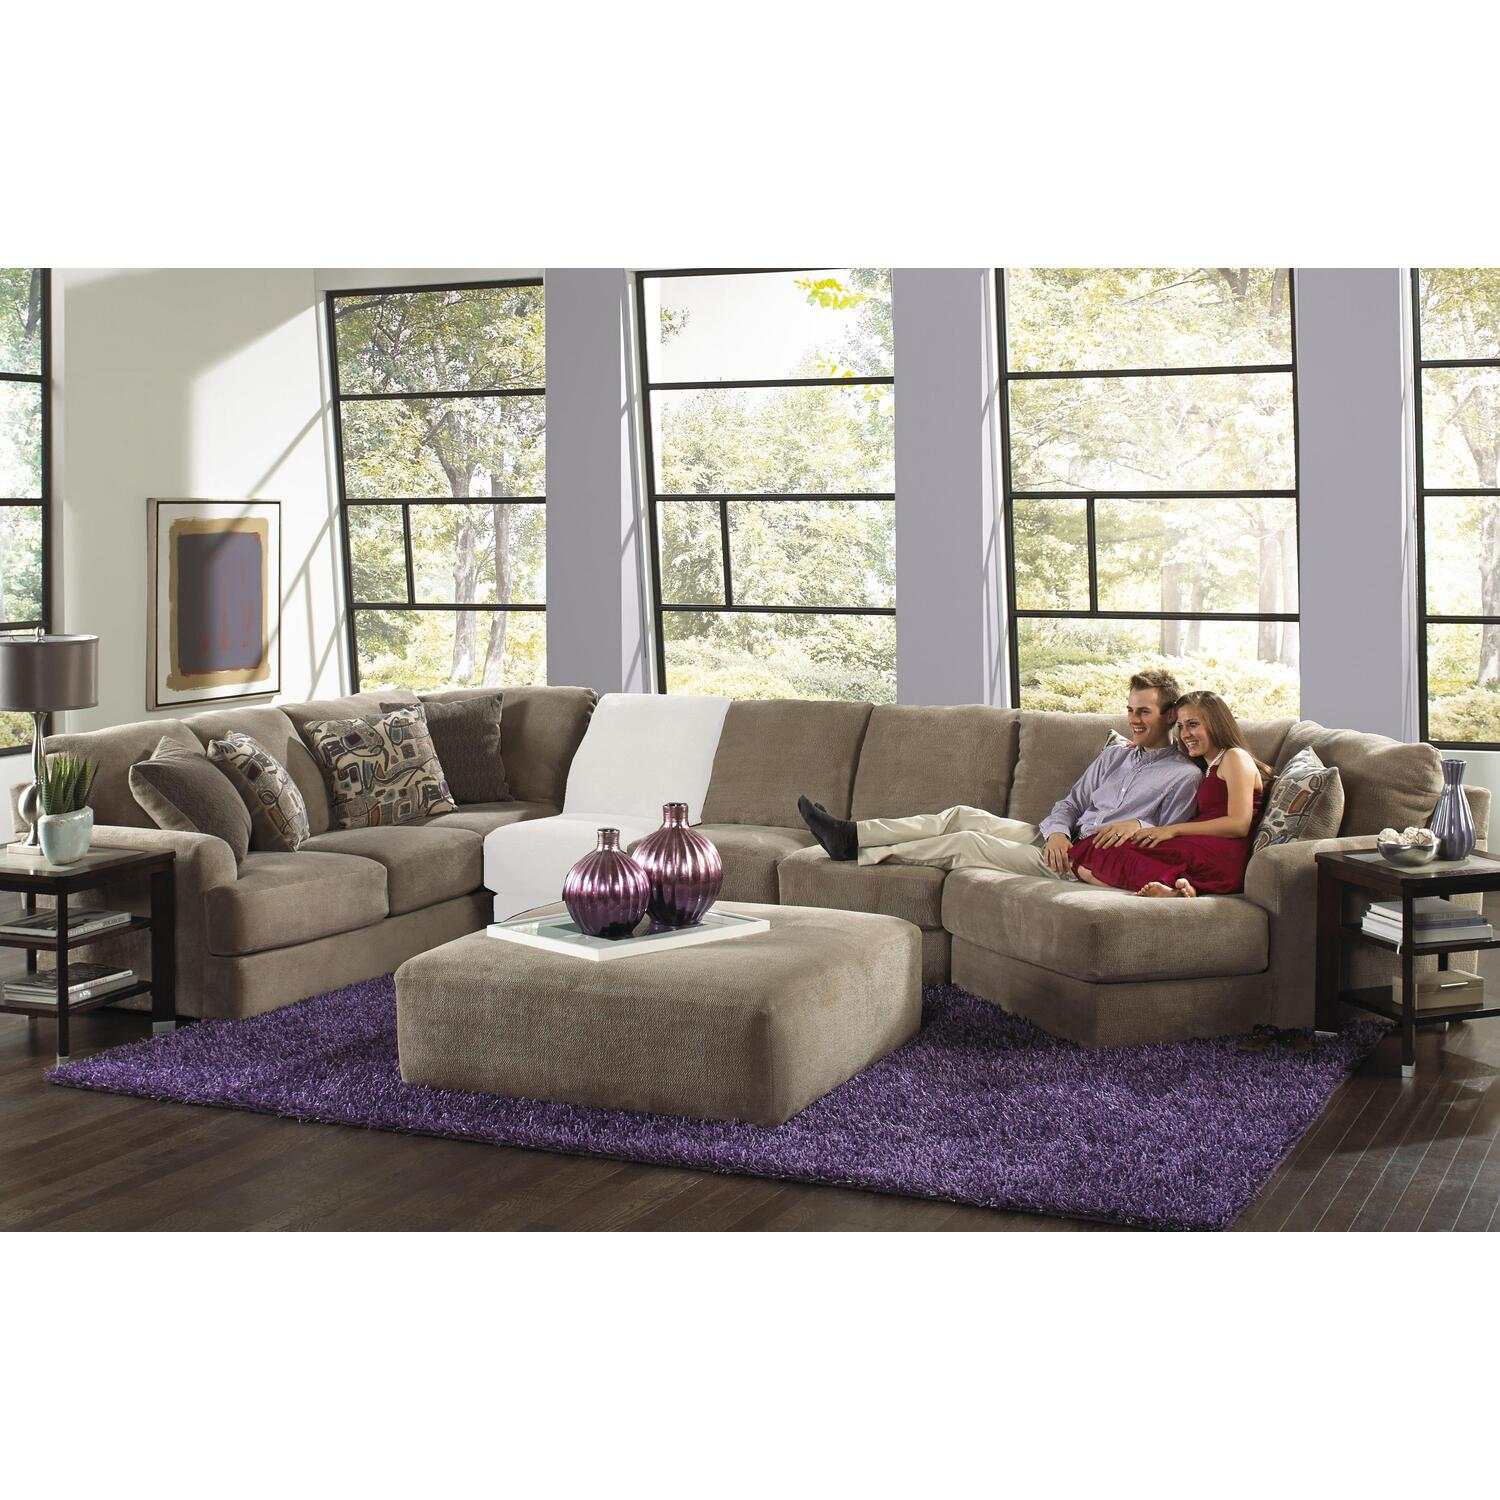 Jackson Furniture Malibu Piano Wedge Sectional With